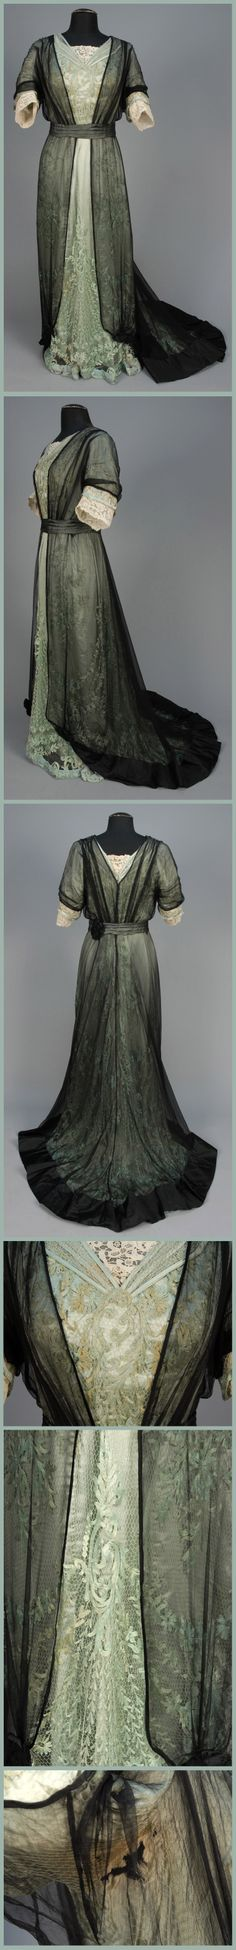 ~TRAINED LACE and SILK GOWN, c. 1908~ One-piece celadon floral embroidered net over satin, having bodice and short sleeve trimmed in cream needle lace, all layered under black chiffon open at front and having pleated sash with black satin medallion and satin hem band. B-38, W-28, L 54-68. (Silk torn and stained under arms, some browning to lace on bodice and at hem) Whitaker Auctions Edwardian Era Fashion, 1900s Fashion, Edwardian Dress, Vintage Fashion, Historical Costume, Historical Clothing, Vintage Dresses, Vintage Outfits, Vintage Clothing